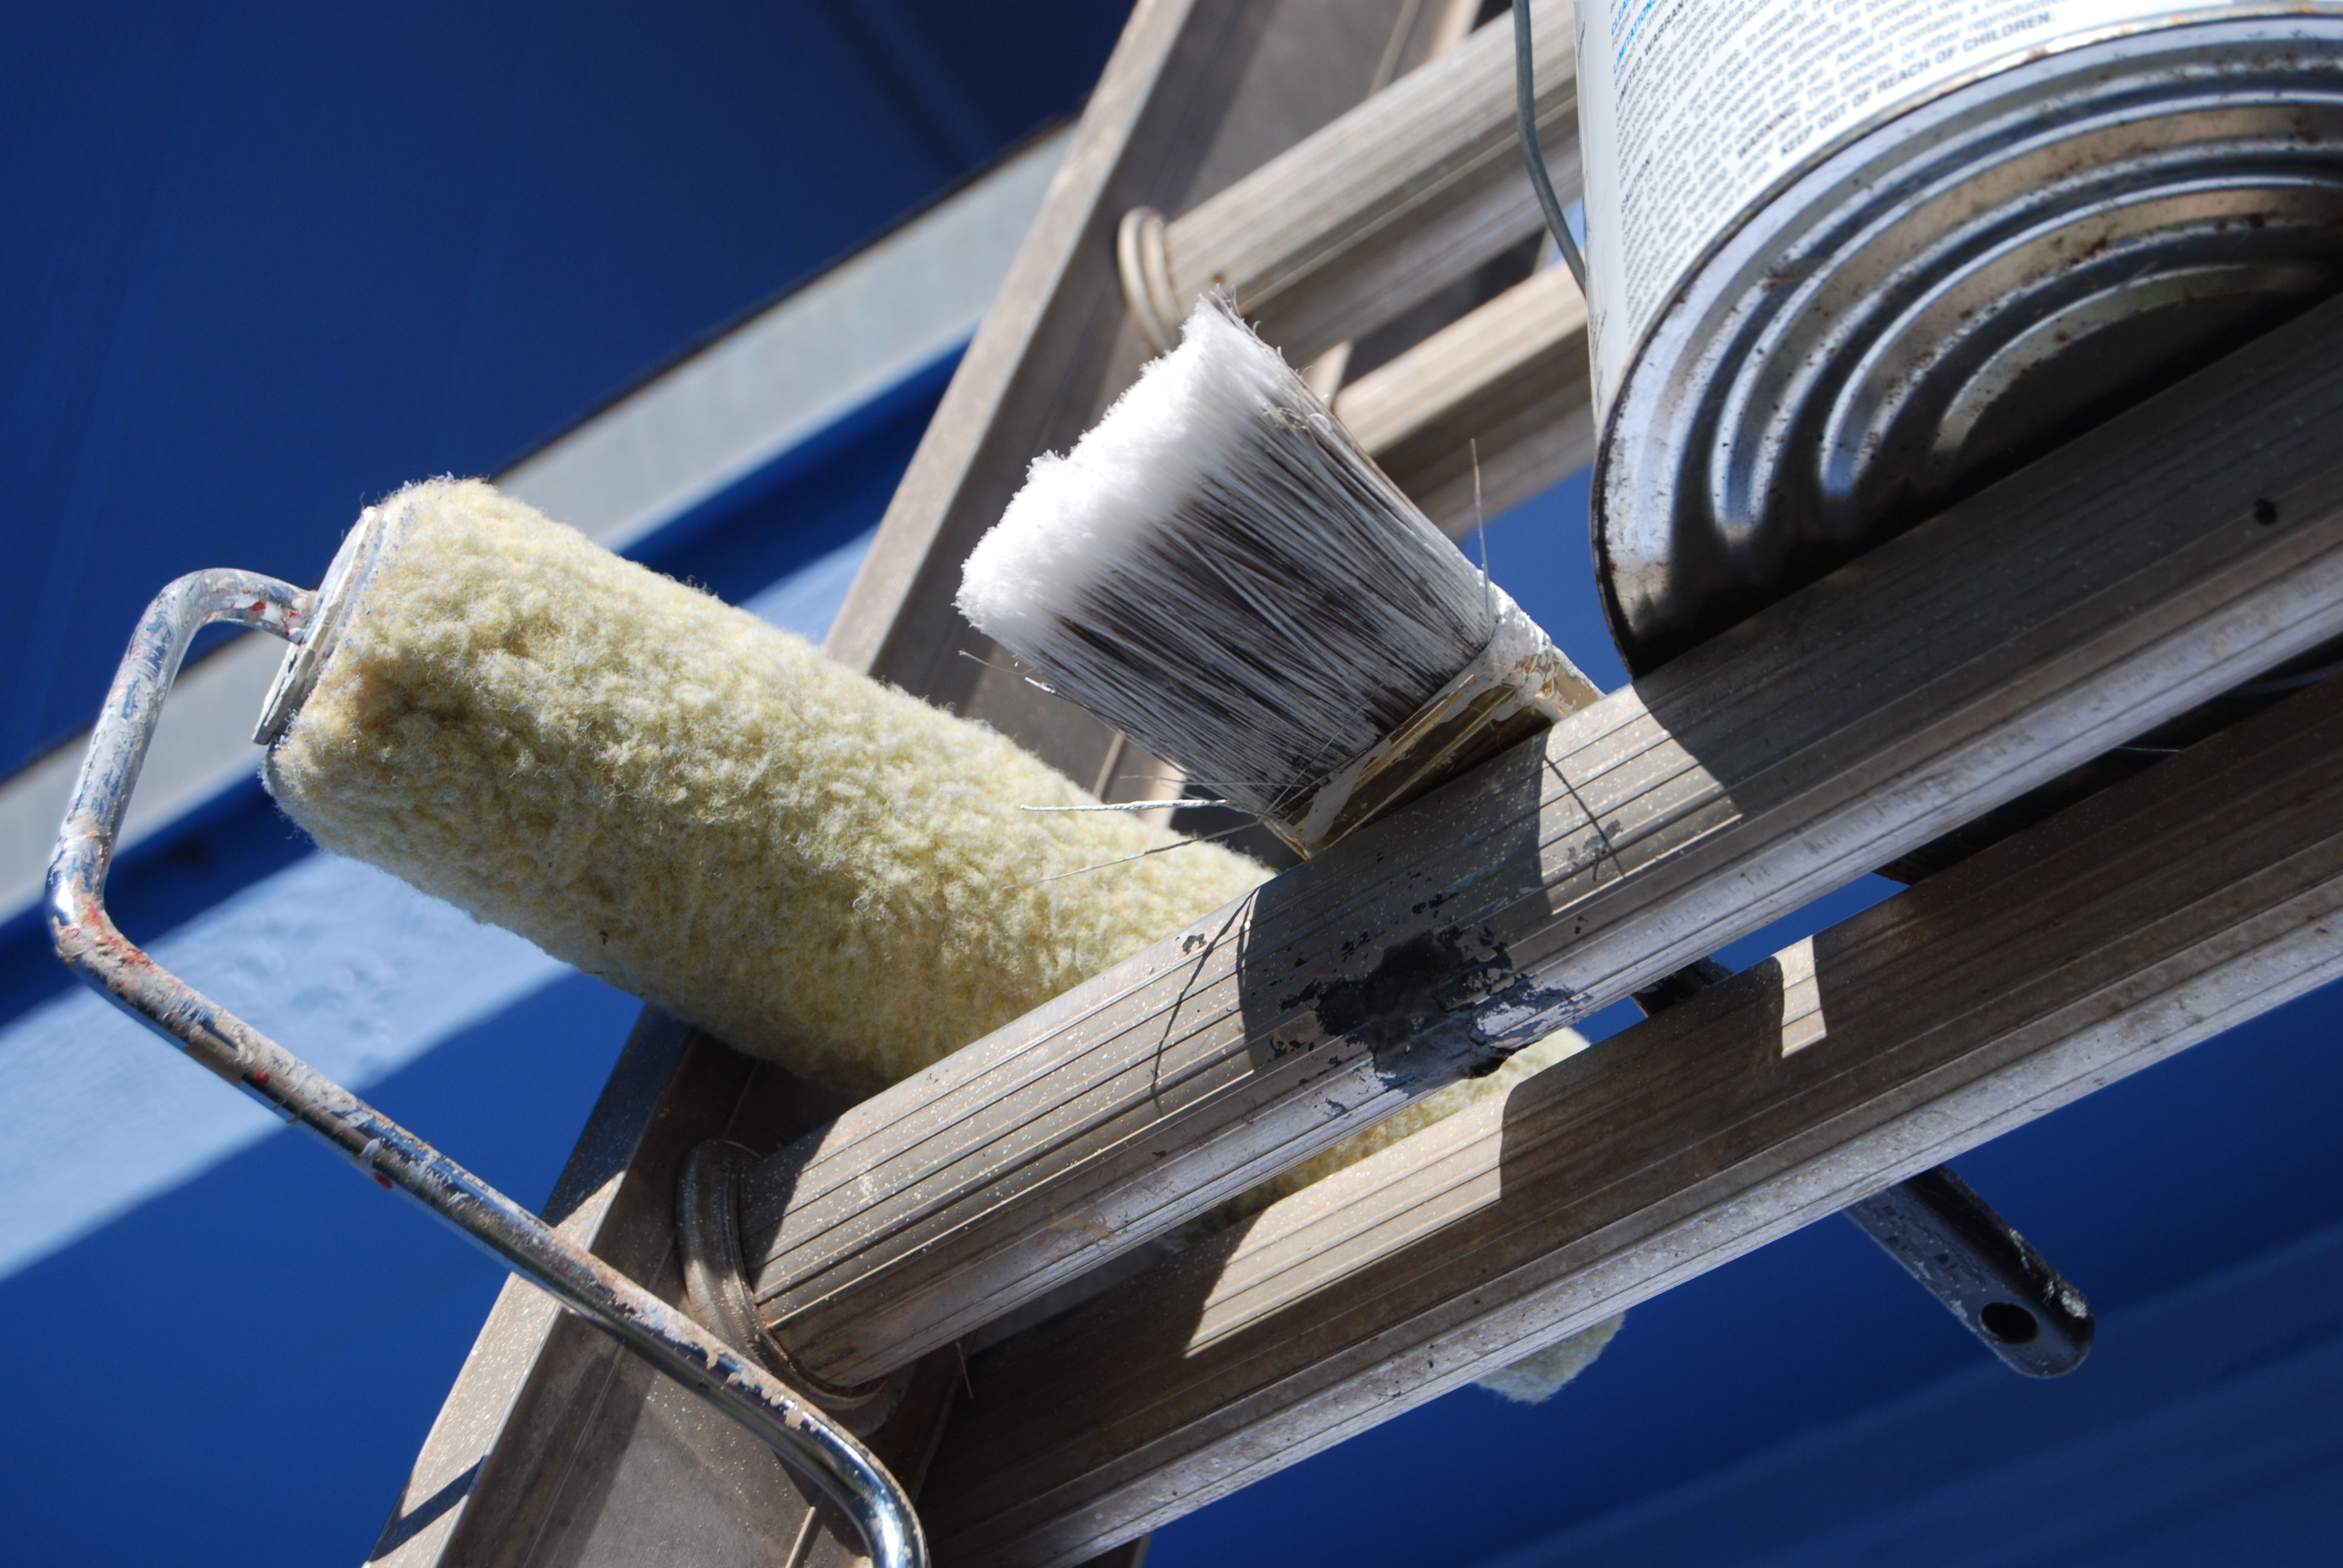 Paint-roller, Paintbrush, and paint-can on ladder